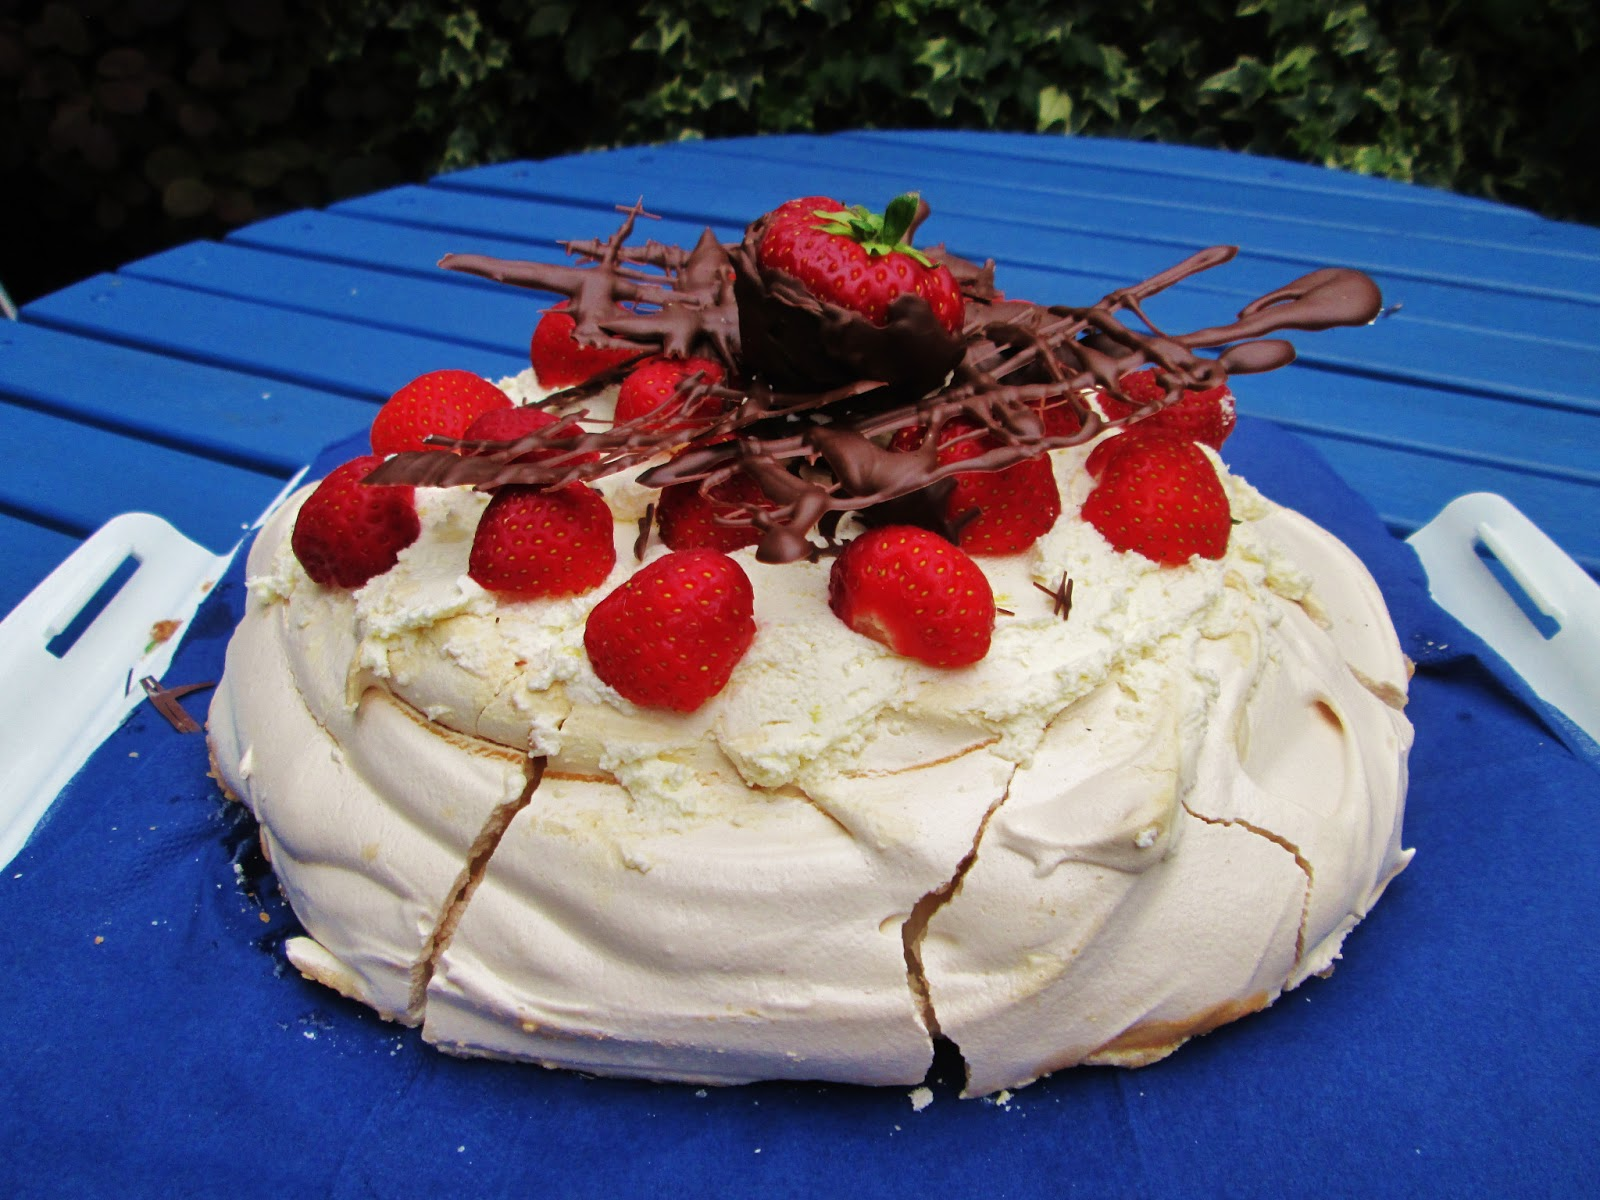 http://themessykitchenuk.blogspot.co.uk/2013/07/strawberry-and-lemon-pavlova.html